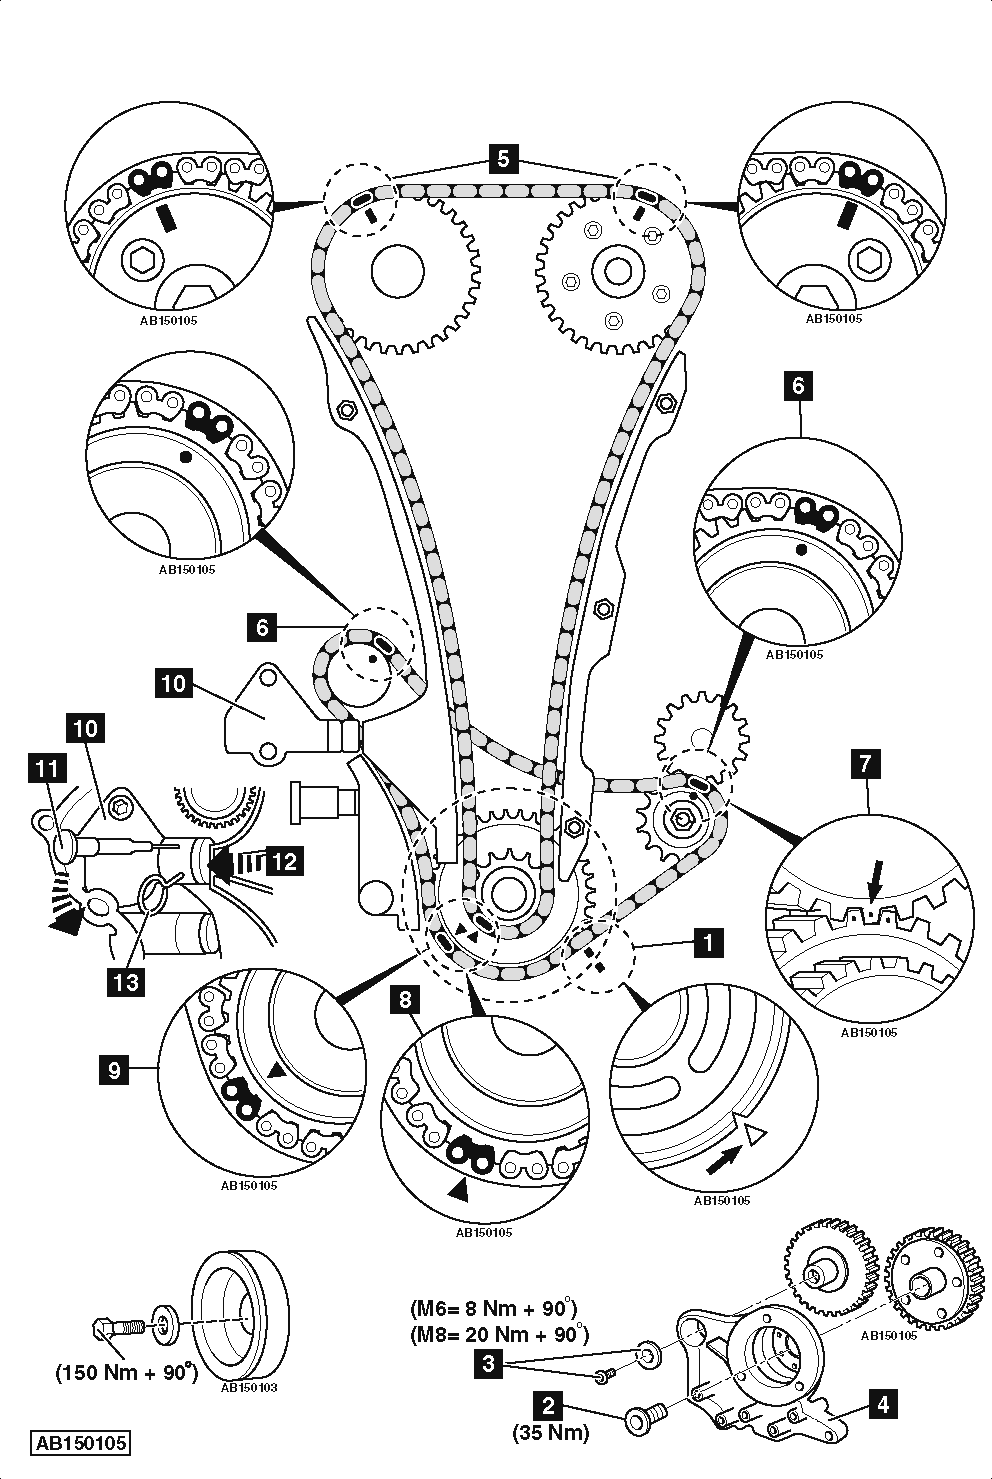 hight resolution of 2009 traverse engine diagram wiring library2012 chevy traverse engine diagram within chevy wiring and 2012 chevy